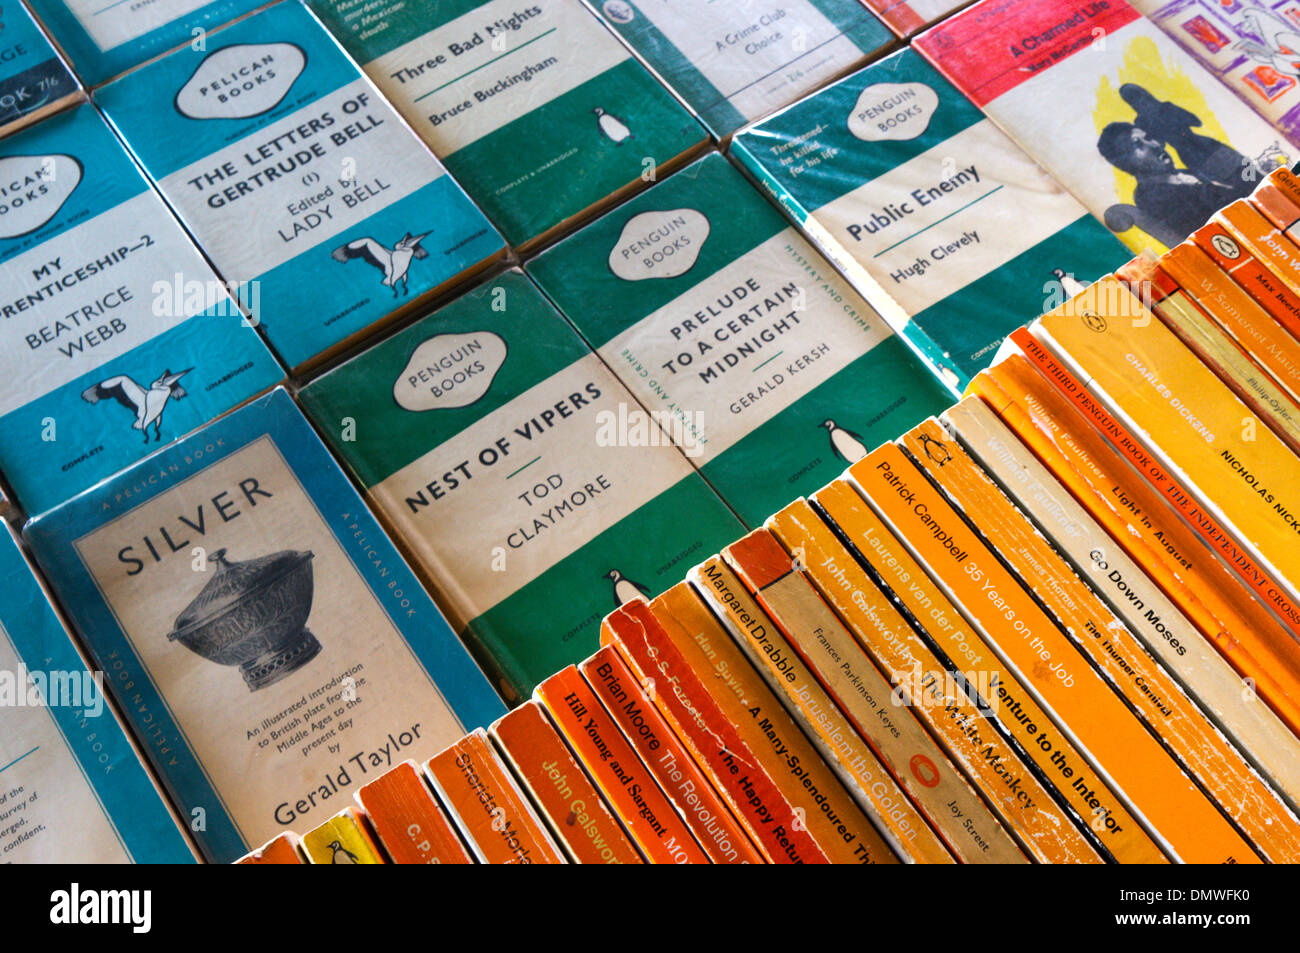 Modern and old Penguin books for sale on a stall on London's South Bank. - Stock Image